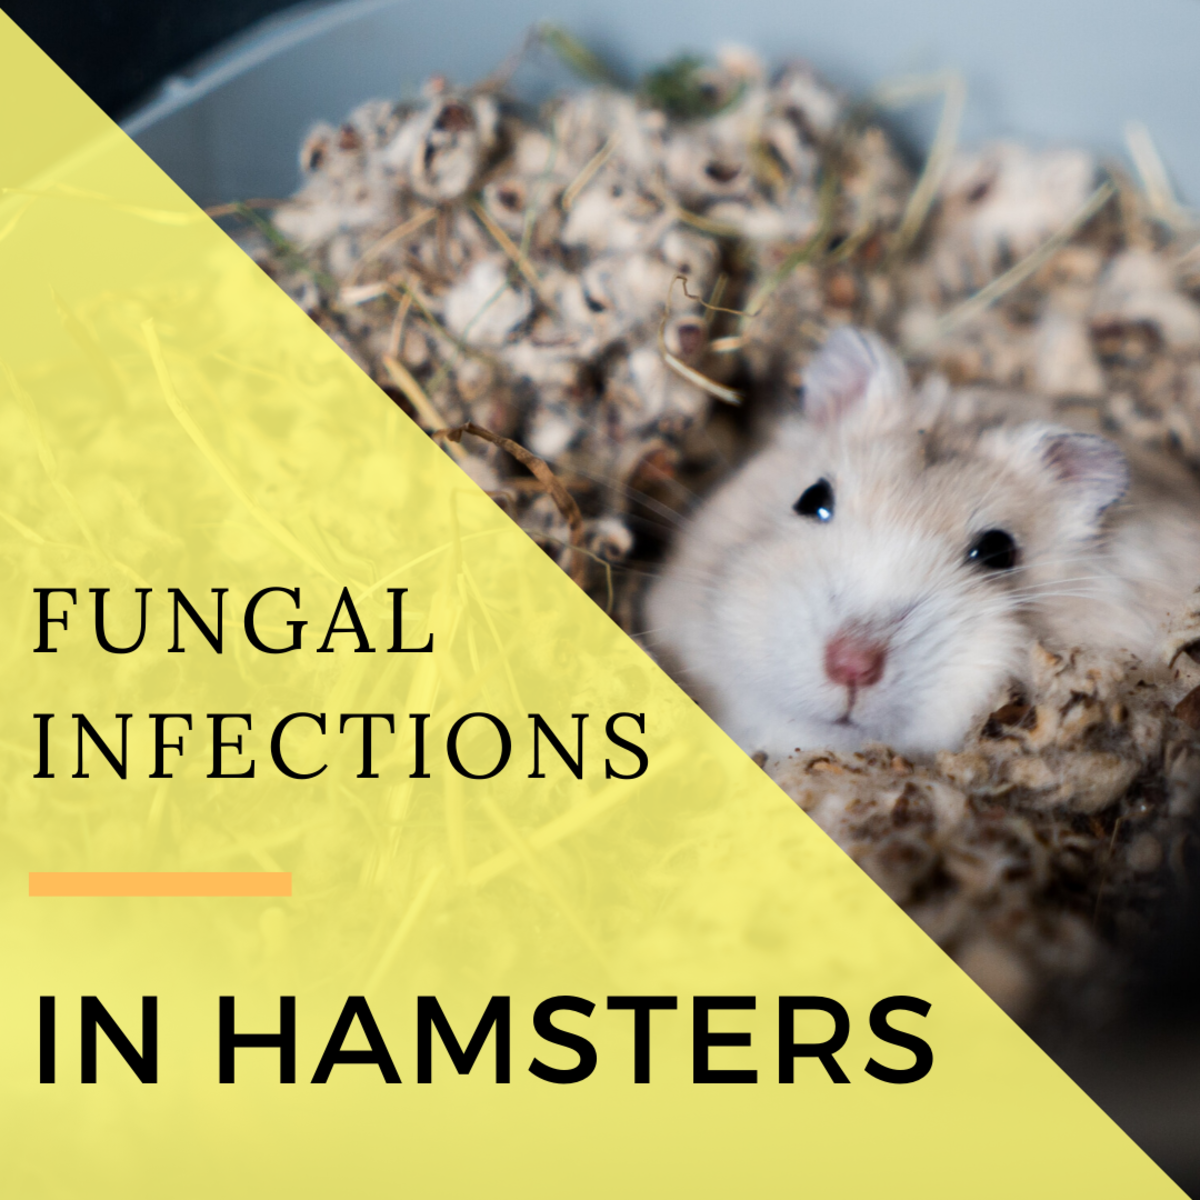 Signs of and Treatment of Fungal Infections in Hamsters